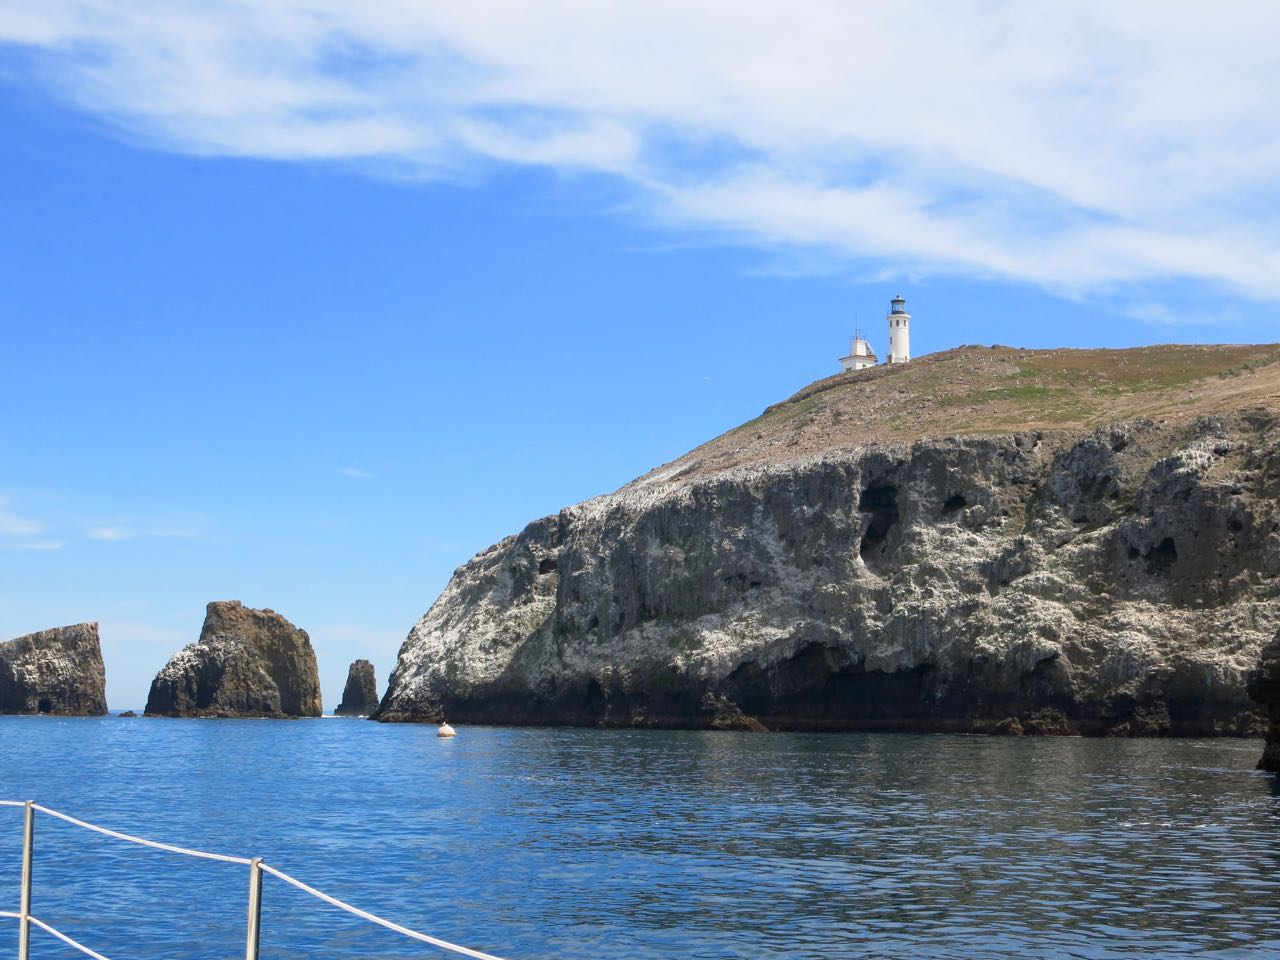 Go to Anacapa Landing Cove with Capt. Dan Ryder and Sail Channel islands.